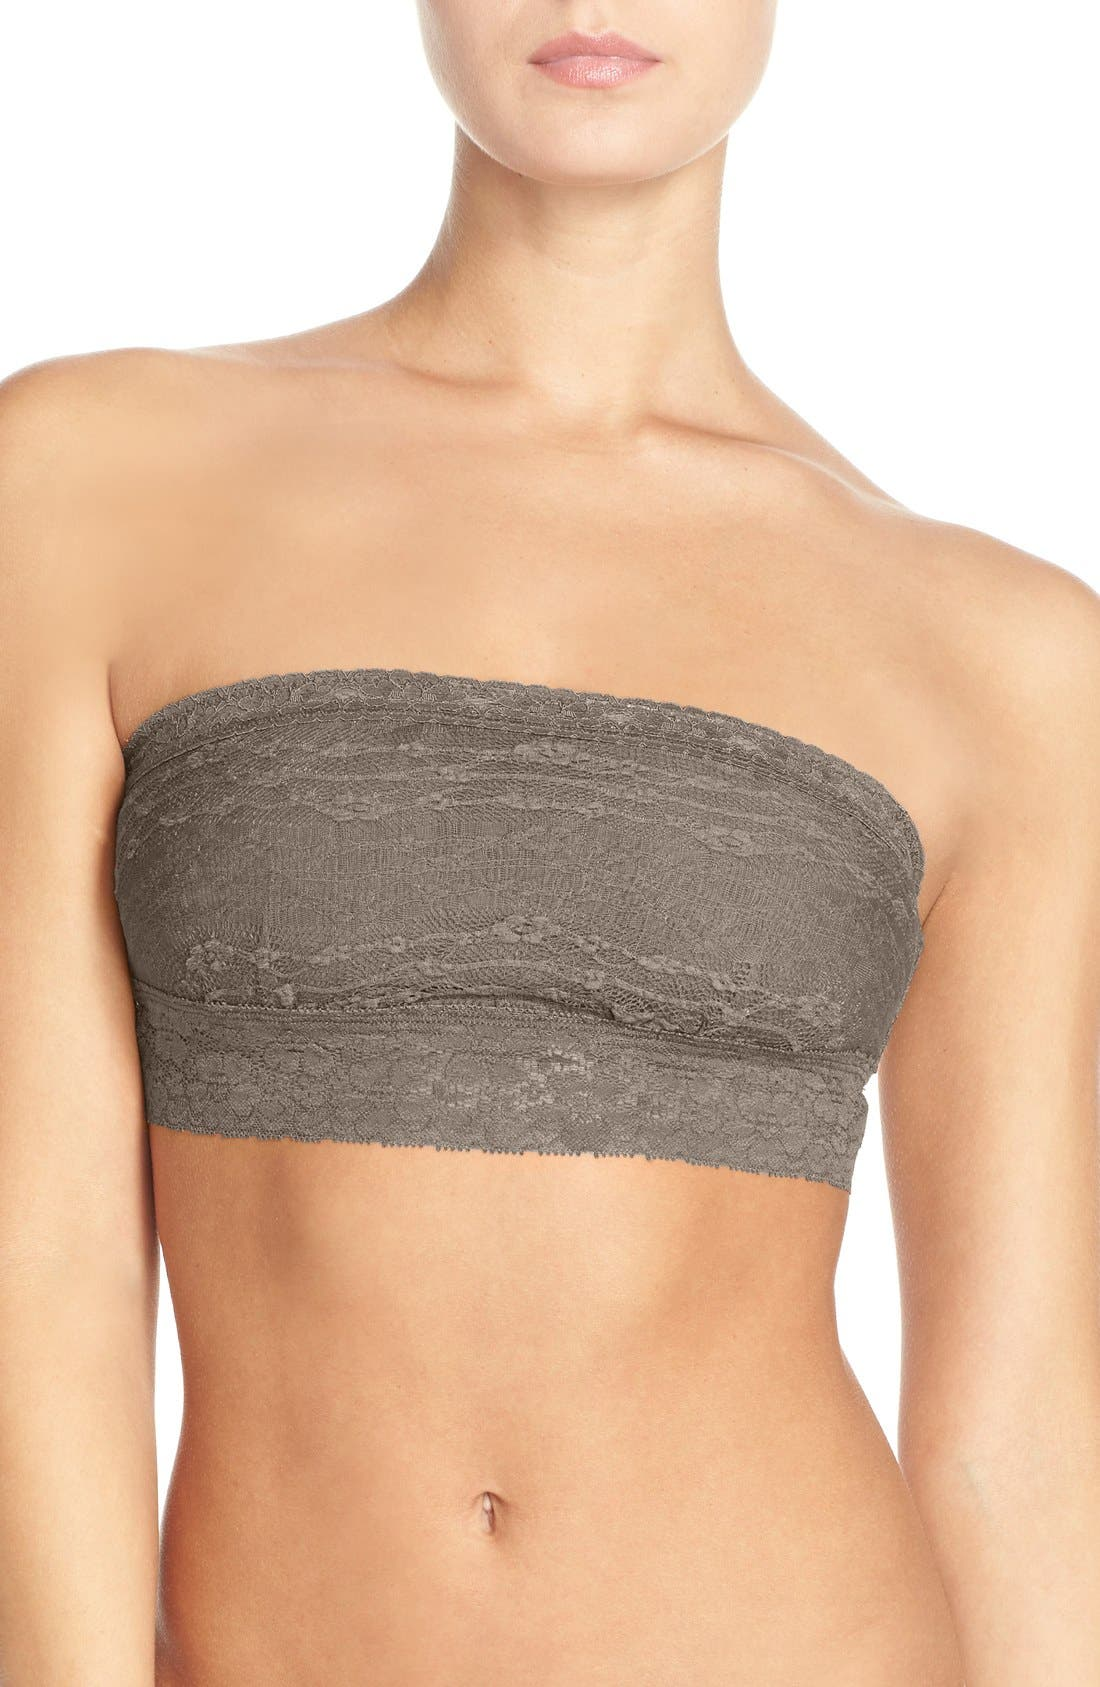 Intimately FP Lace Bandeau Bralette,                             Main thumbnail 1, color,                             SOLID TAUPE